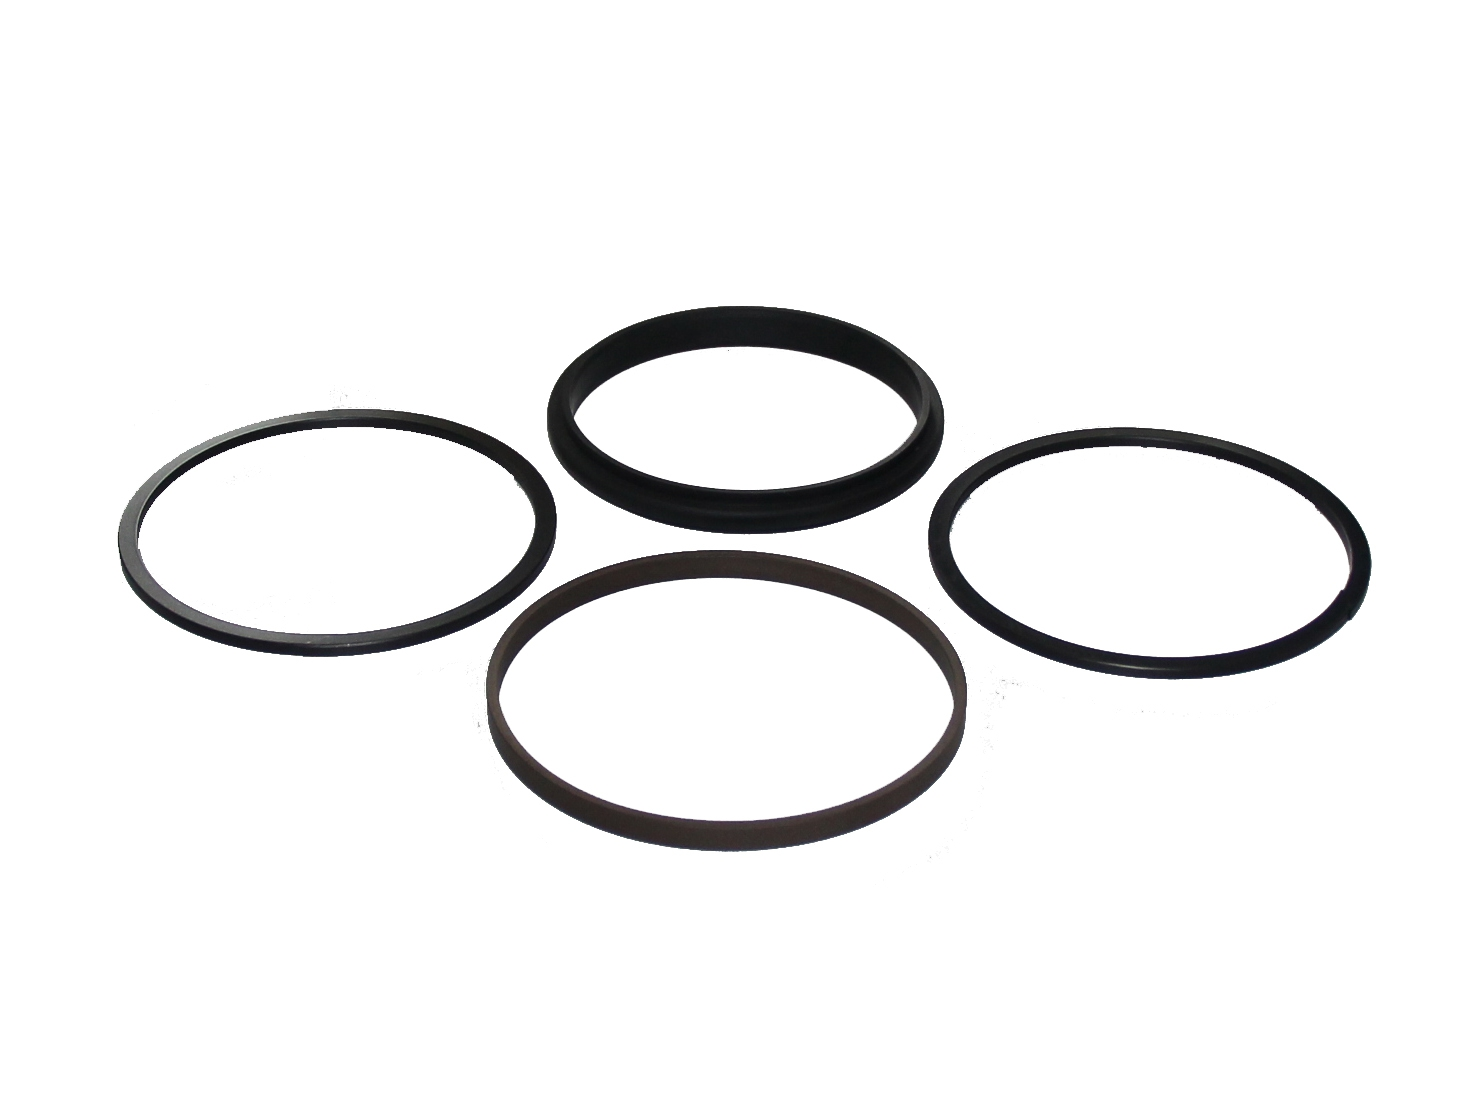 DSH-Pneumatic Cylinder Piston Seals Hydraulic Cylinder Compact Seal-4